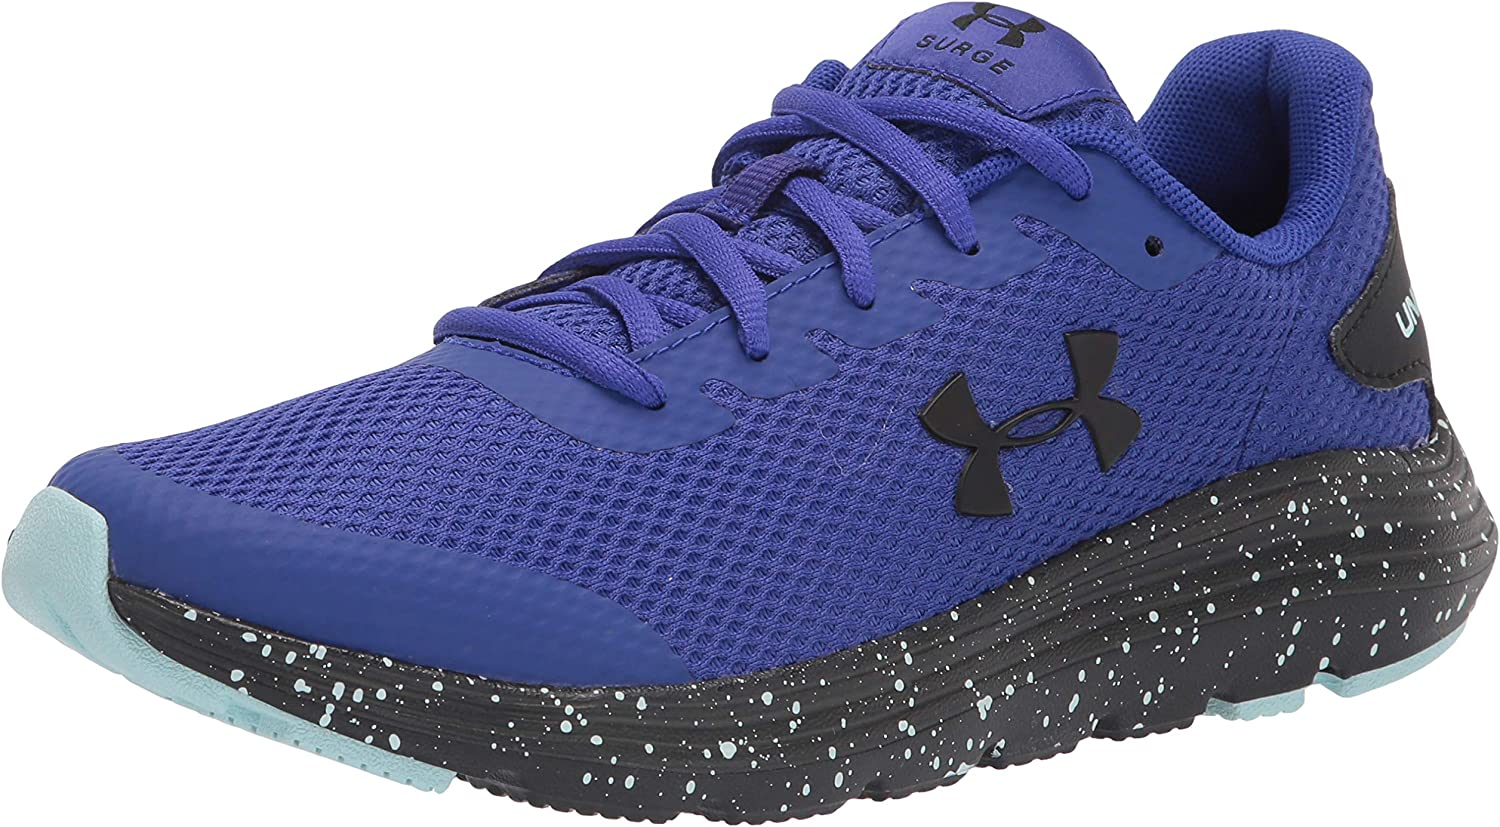 Under Armour Large-scale sale Unisex-Child Grade School 2 Shoe New mail order Fade Surge Running